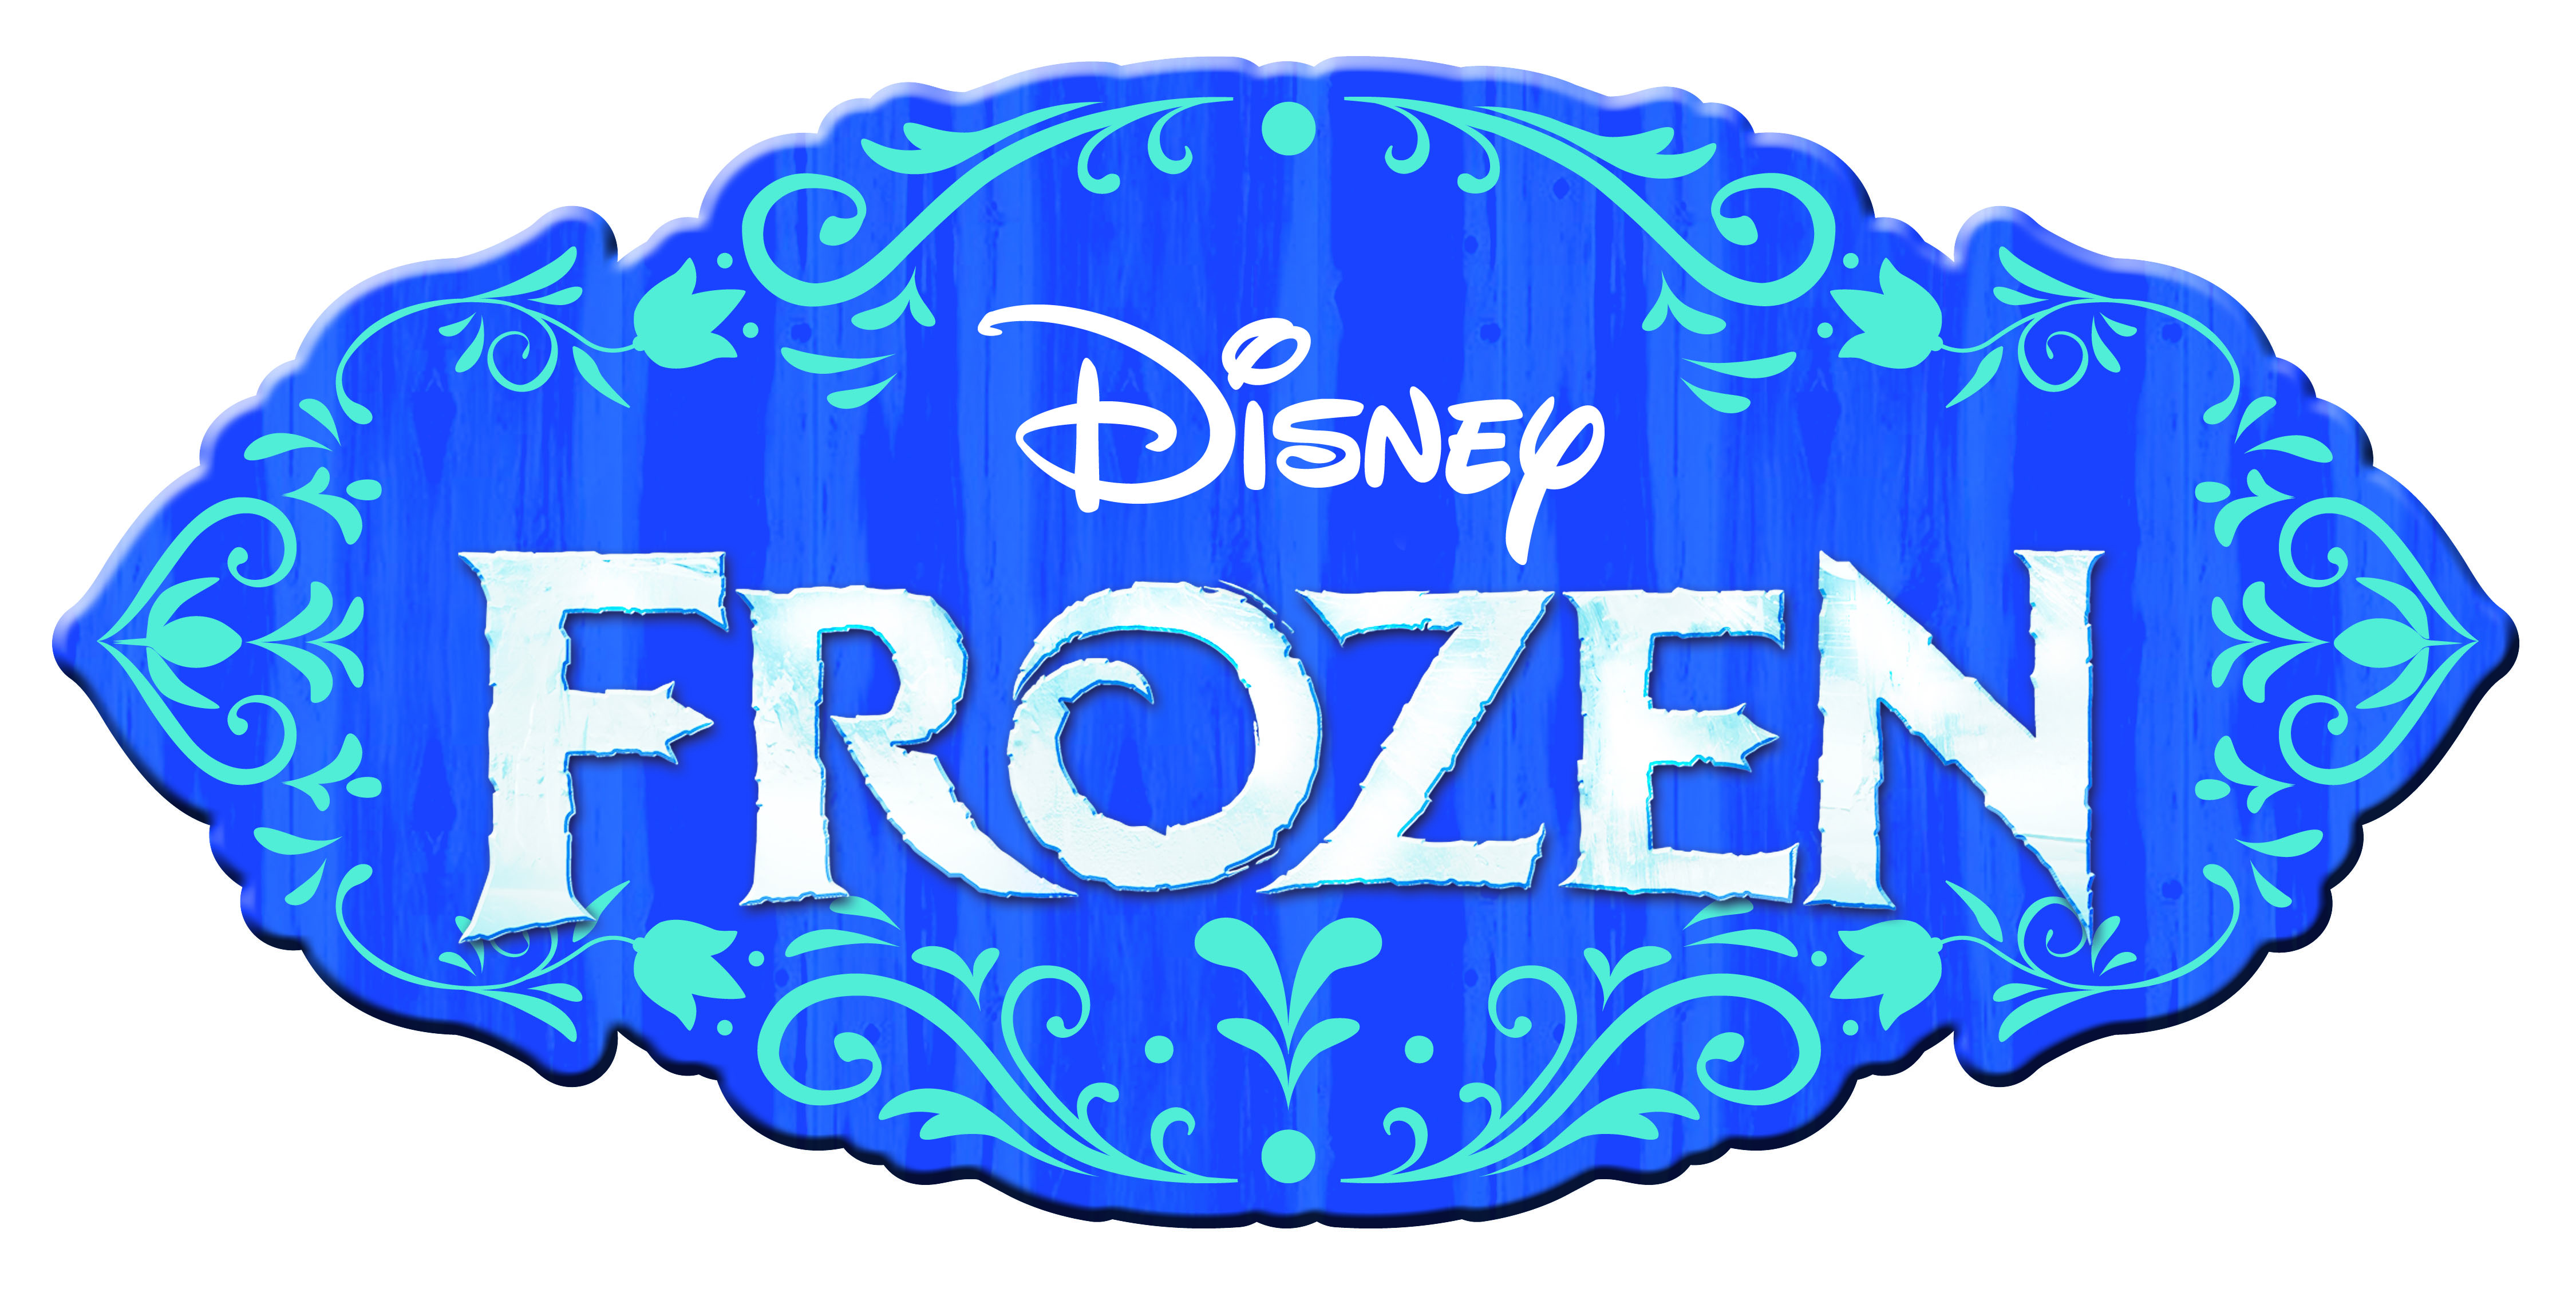 Frozen Logo Vector at GetDrawings.com | Free for personal ...